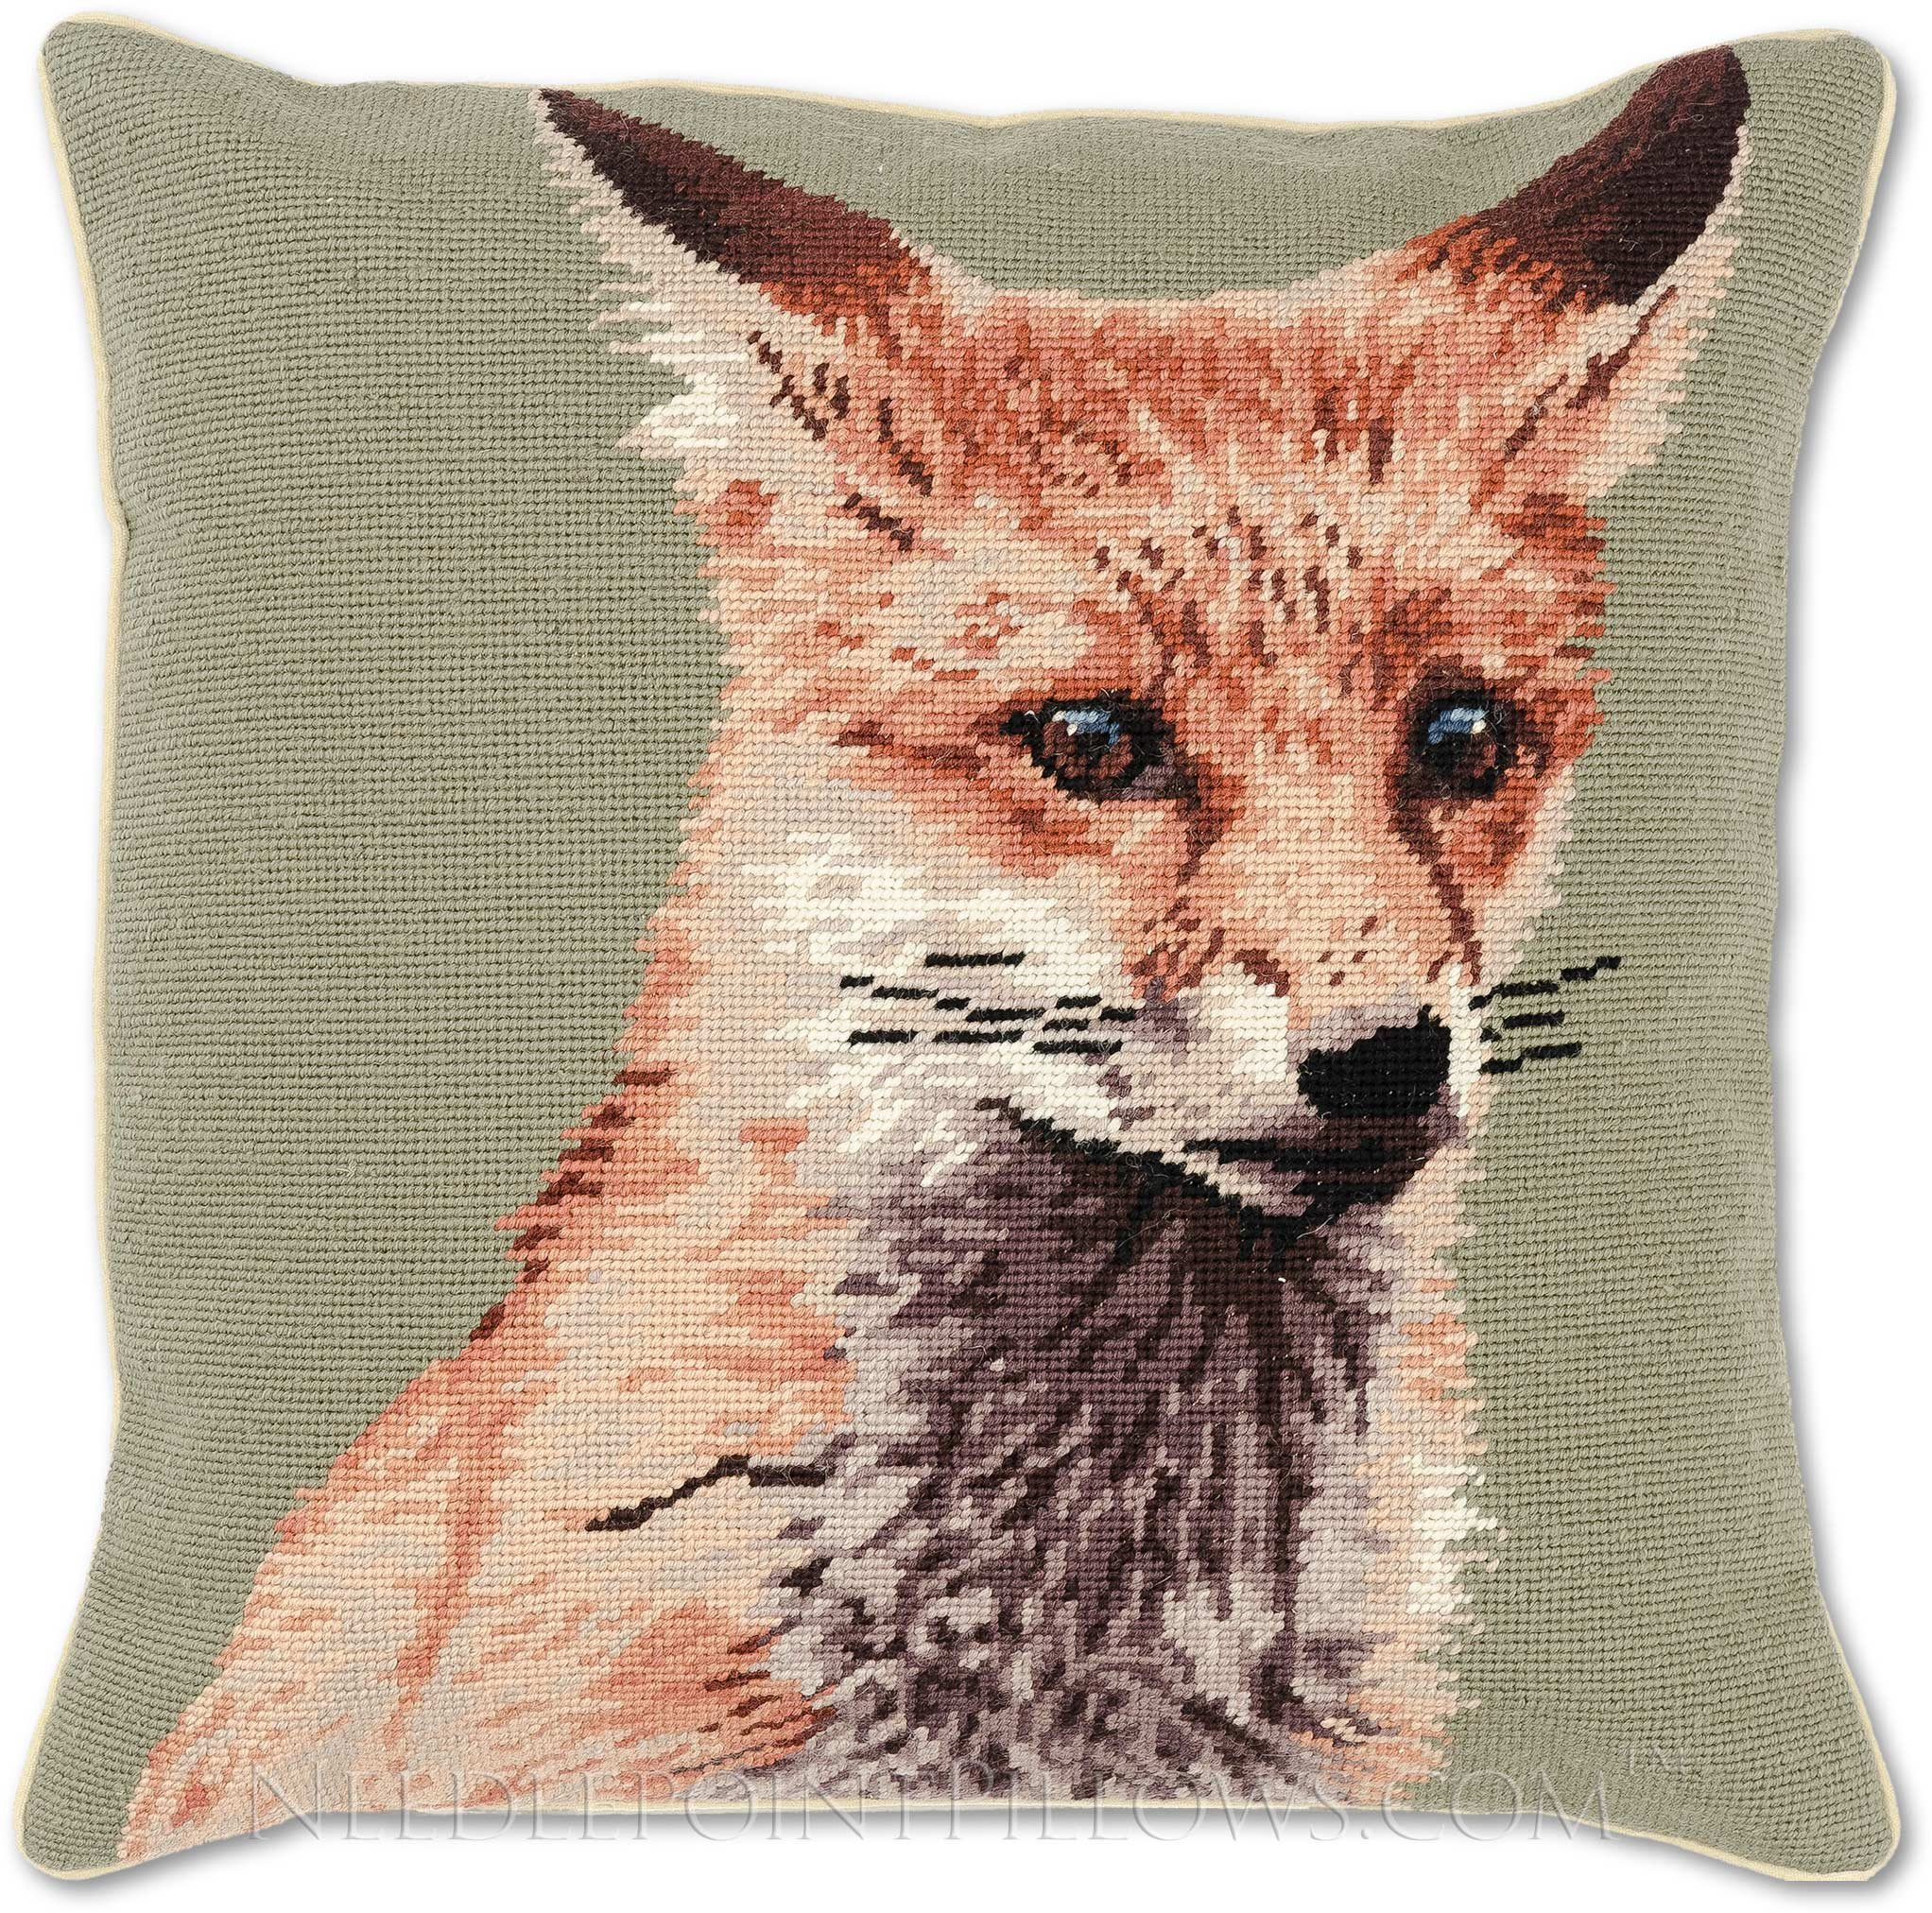 Handmade 100% Wool Needlepoint Decorative Animal Wildlife Red Fox Throw Pillow. 18'' x 18''. by NeedlepointPillows.com